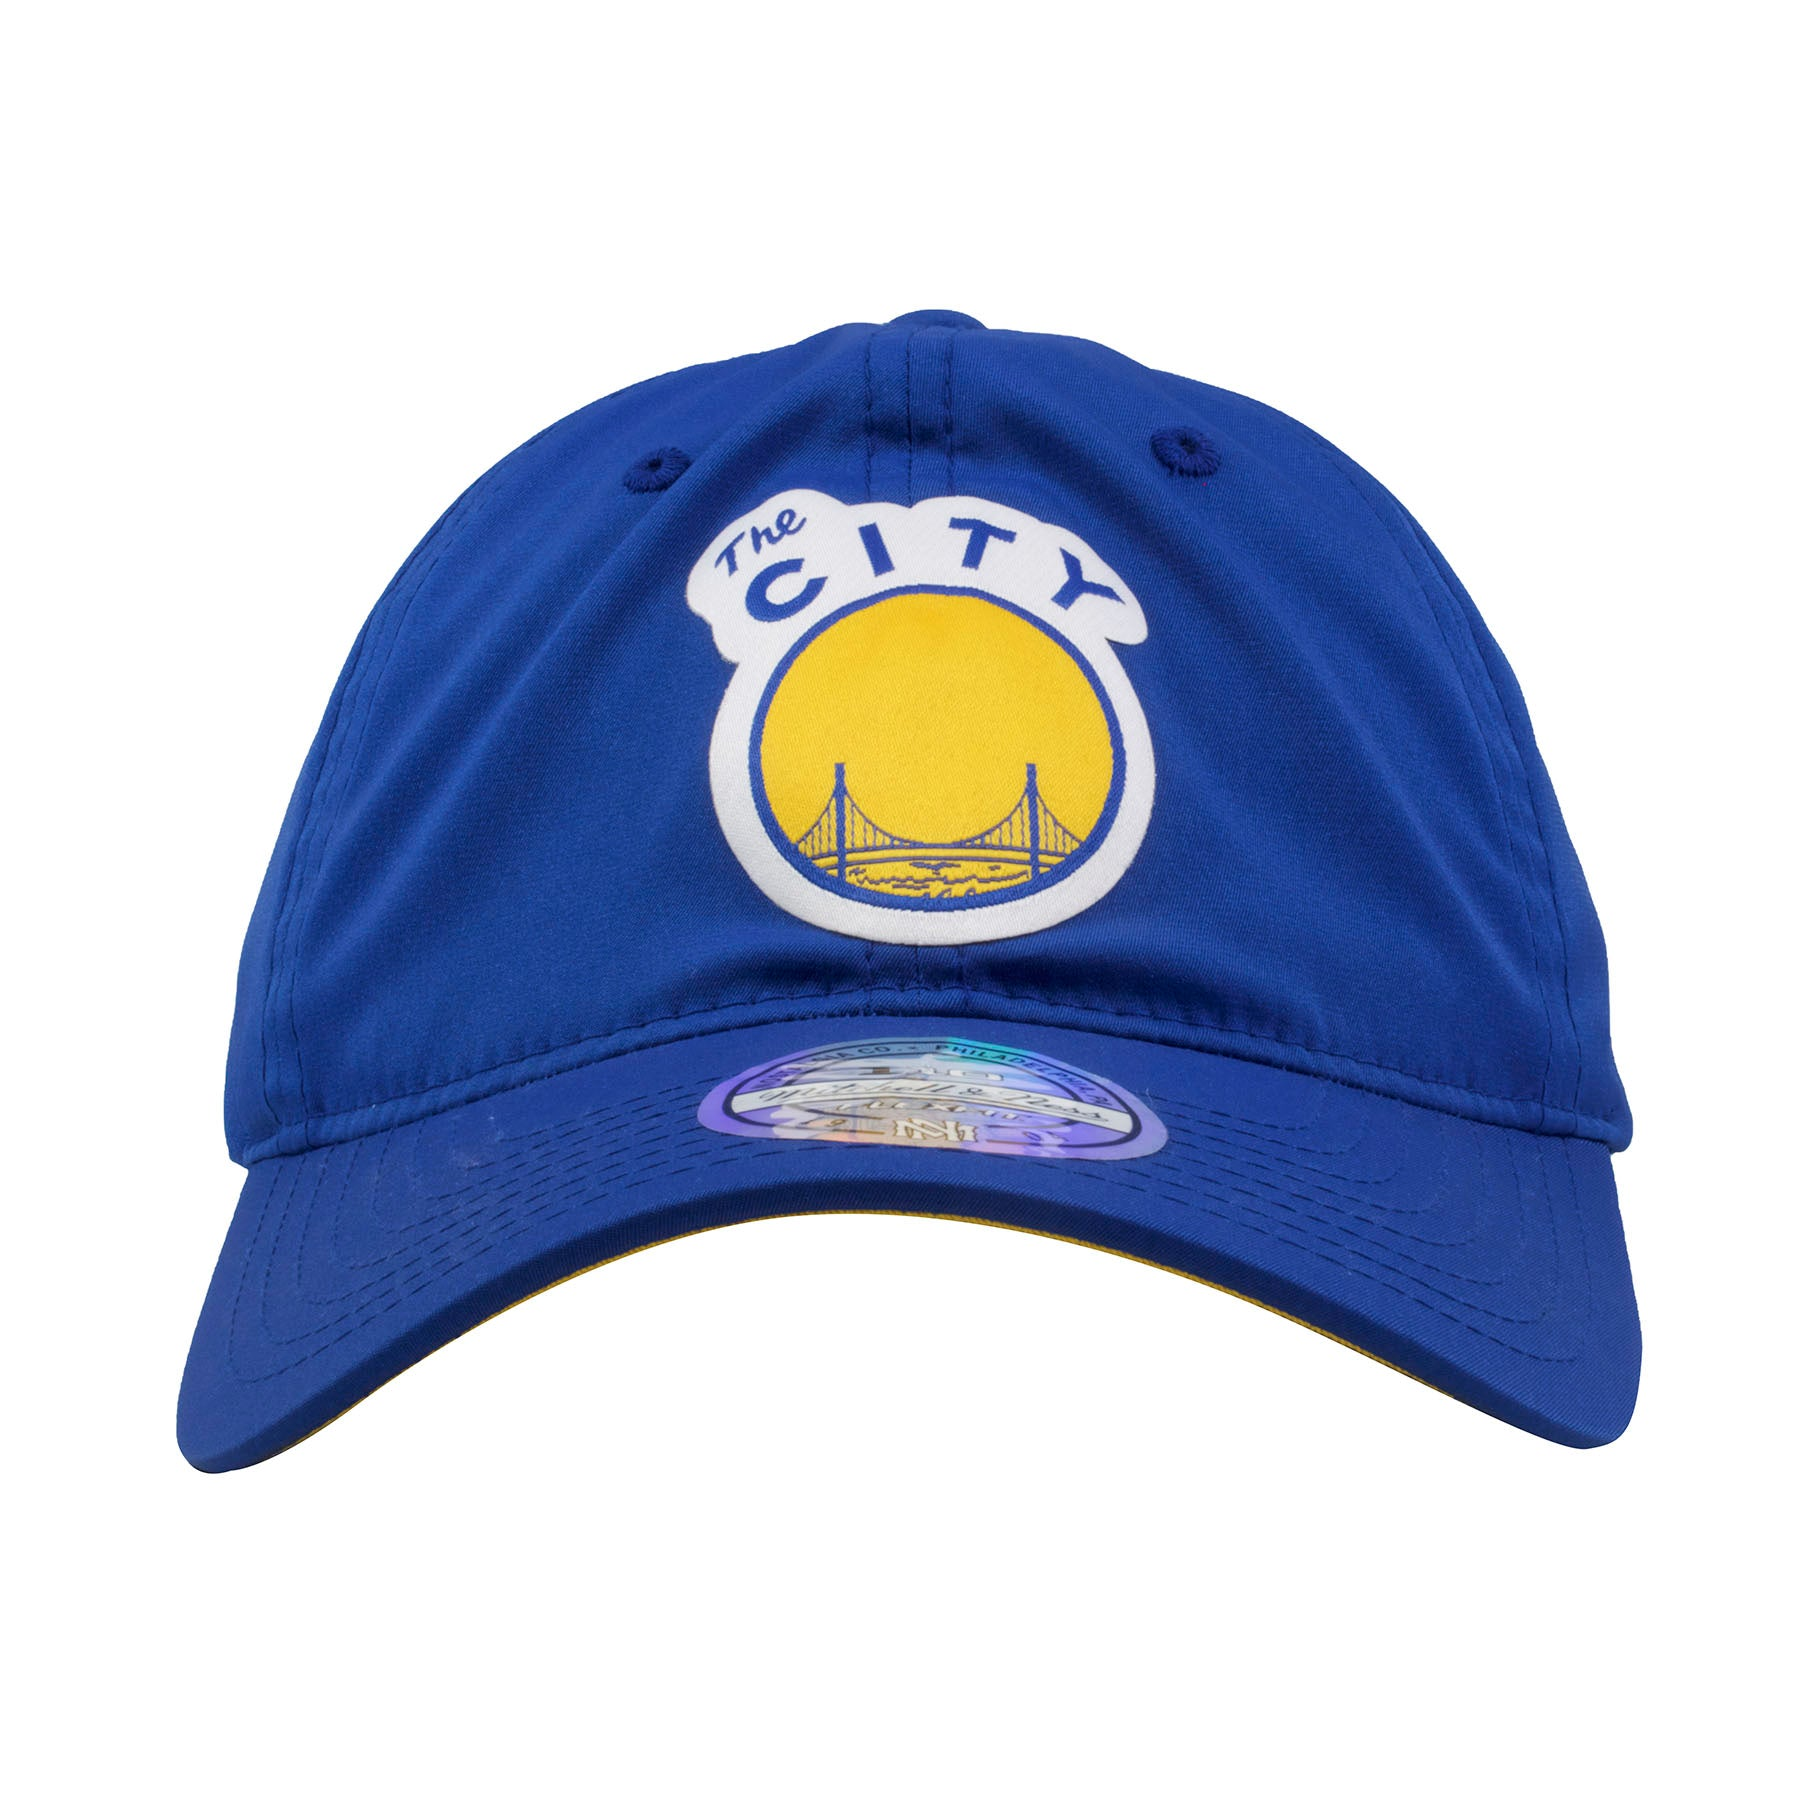 new concept abea5 a5a6a on the front of the golden state warriors blue poly dad hat is the Warriors  vintage